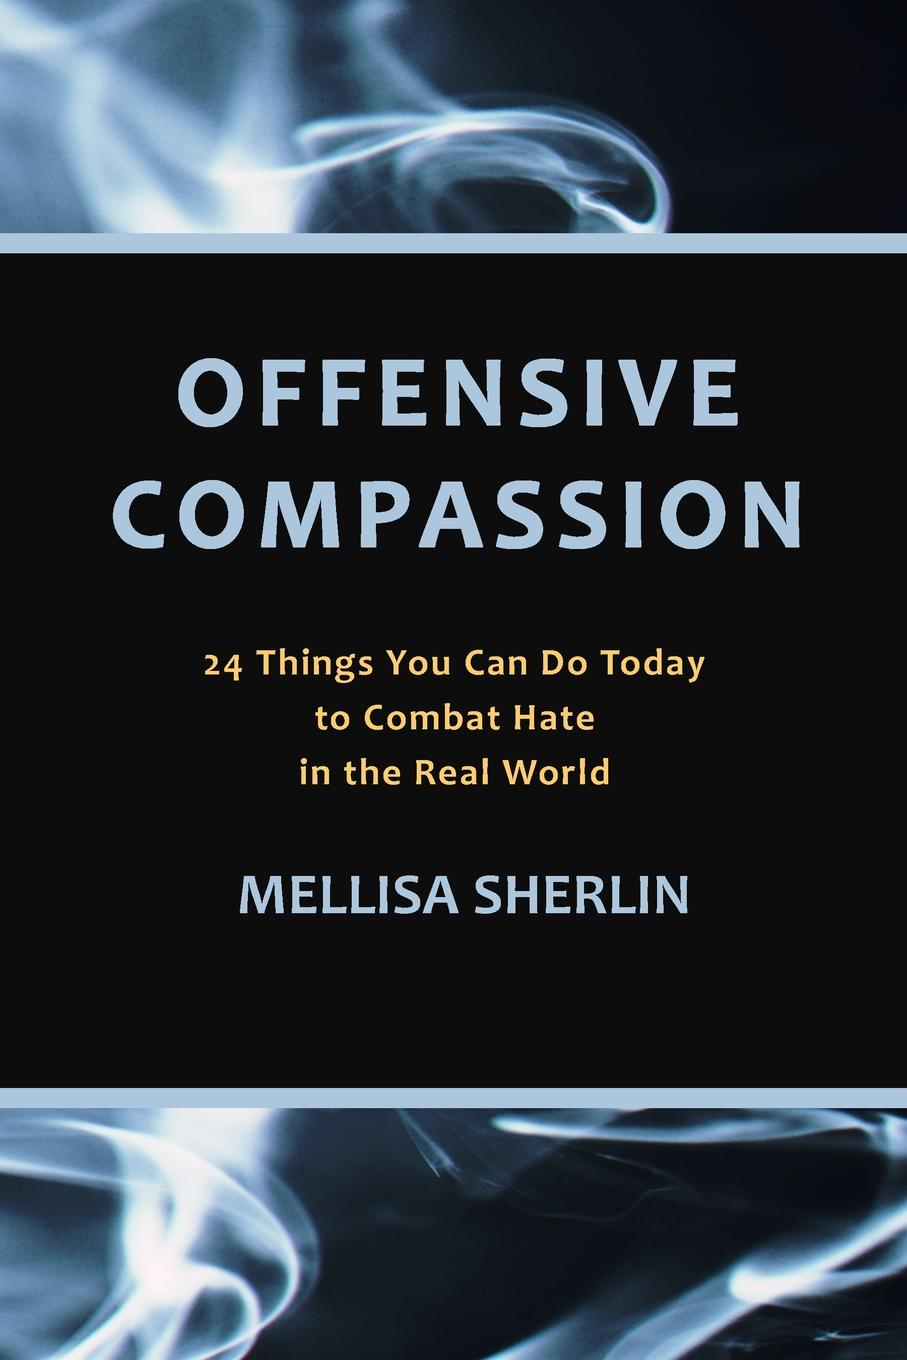 Mellisa A. Sherlin Offensive Compassion. 24 Actions You Can Do Today to Combat Hate in the Real World lily monadjemi angels can hate too